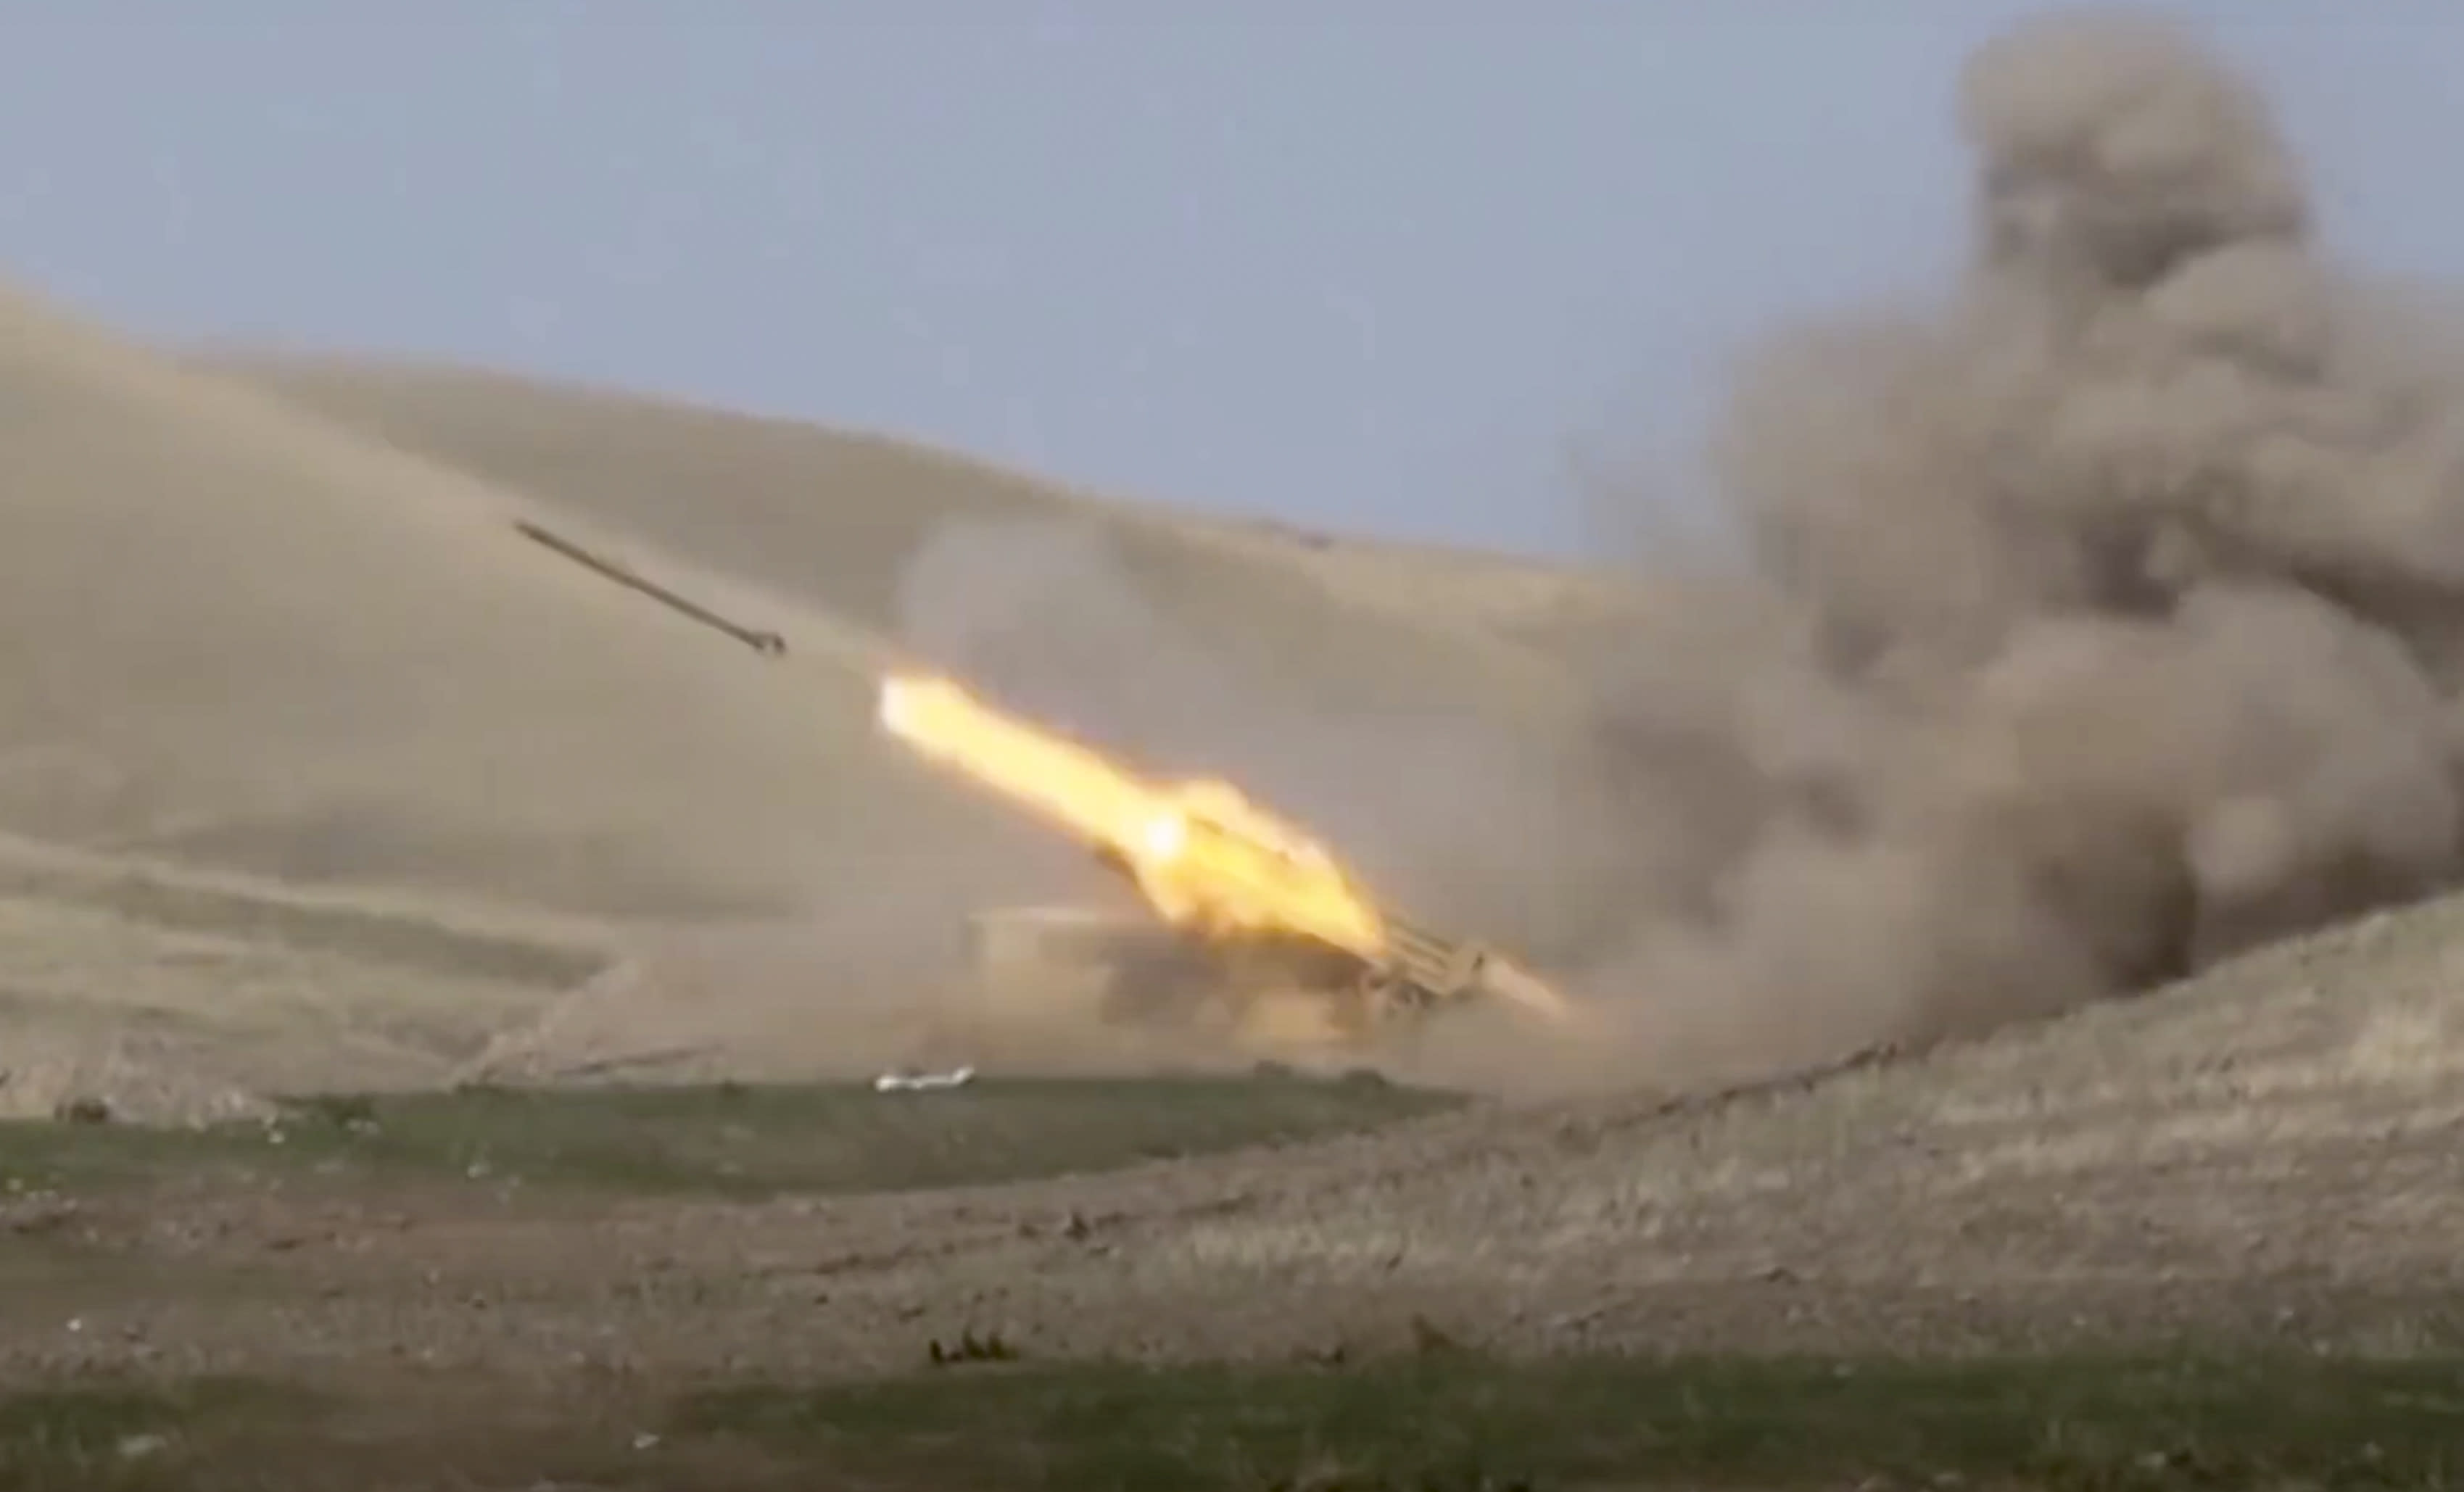 In this image taken from footage released by Azerbaijan's Defense Ministry on Sunday, Sept. 27, 2020, an Azerbaijan's rocket launches from missile system at the contact line of the self-proclaimed Republic of Nagorno-Karabakh, Azerbaijan. Fighting between Armenian and Azerbaijani forces over the disputed separatist region of Nagorno-Karabakh continued on Monday morning after erupting the day before, with both sides blaming each other for resuming the attacks. (Azerbaijan's Defense Ministry via AP)